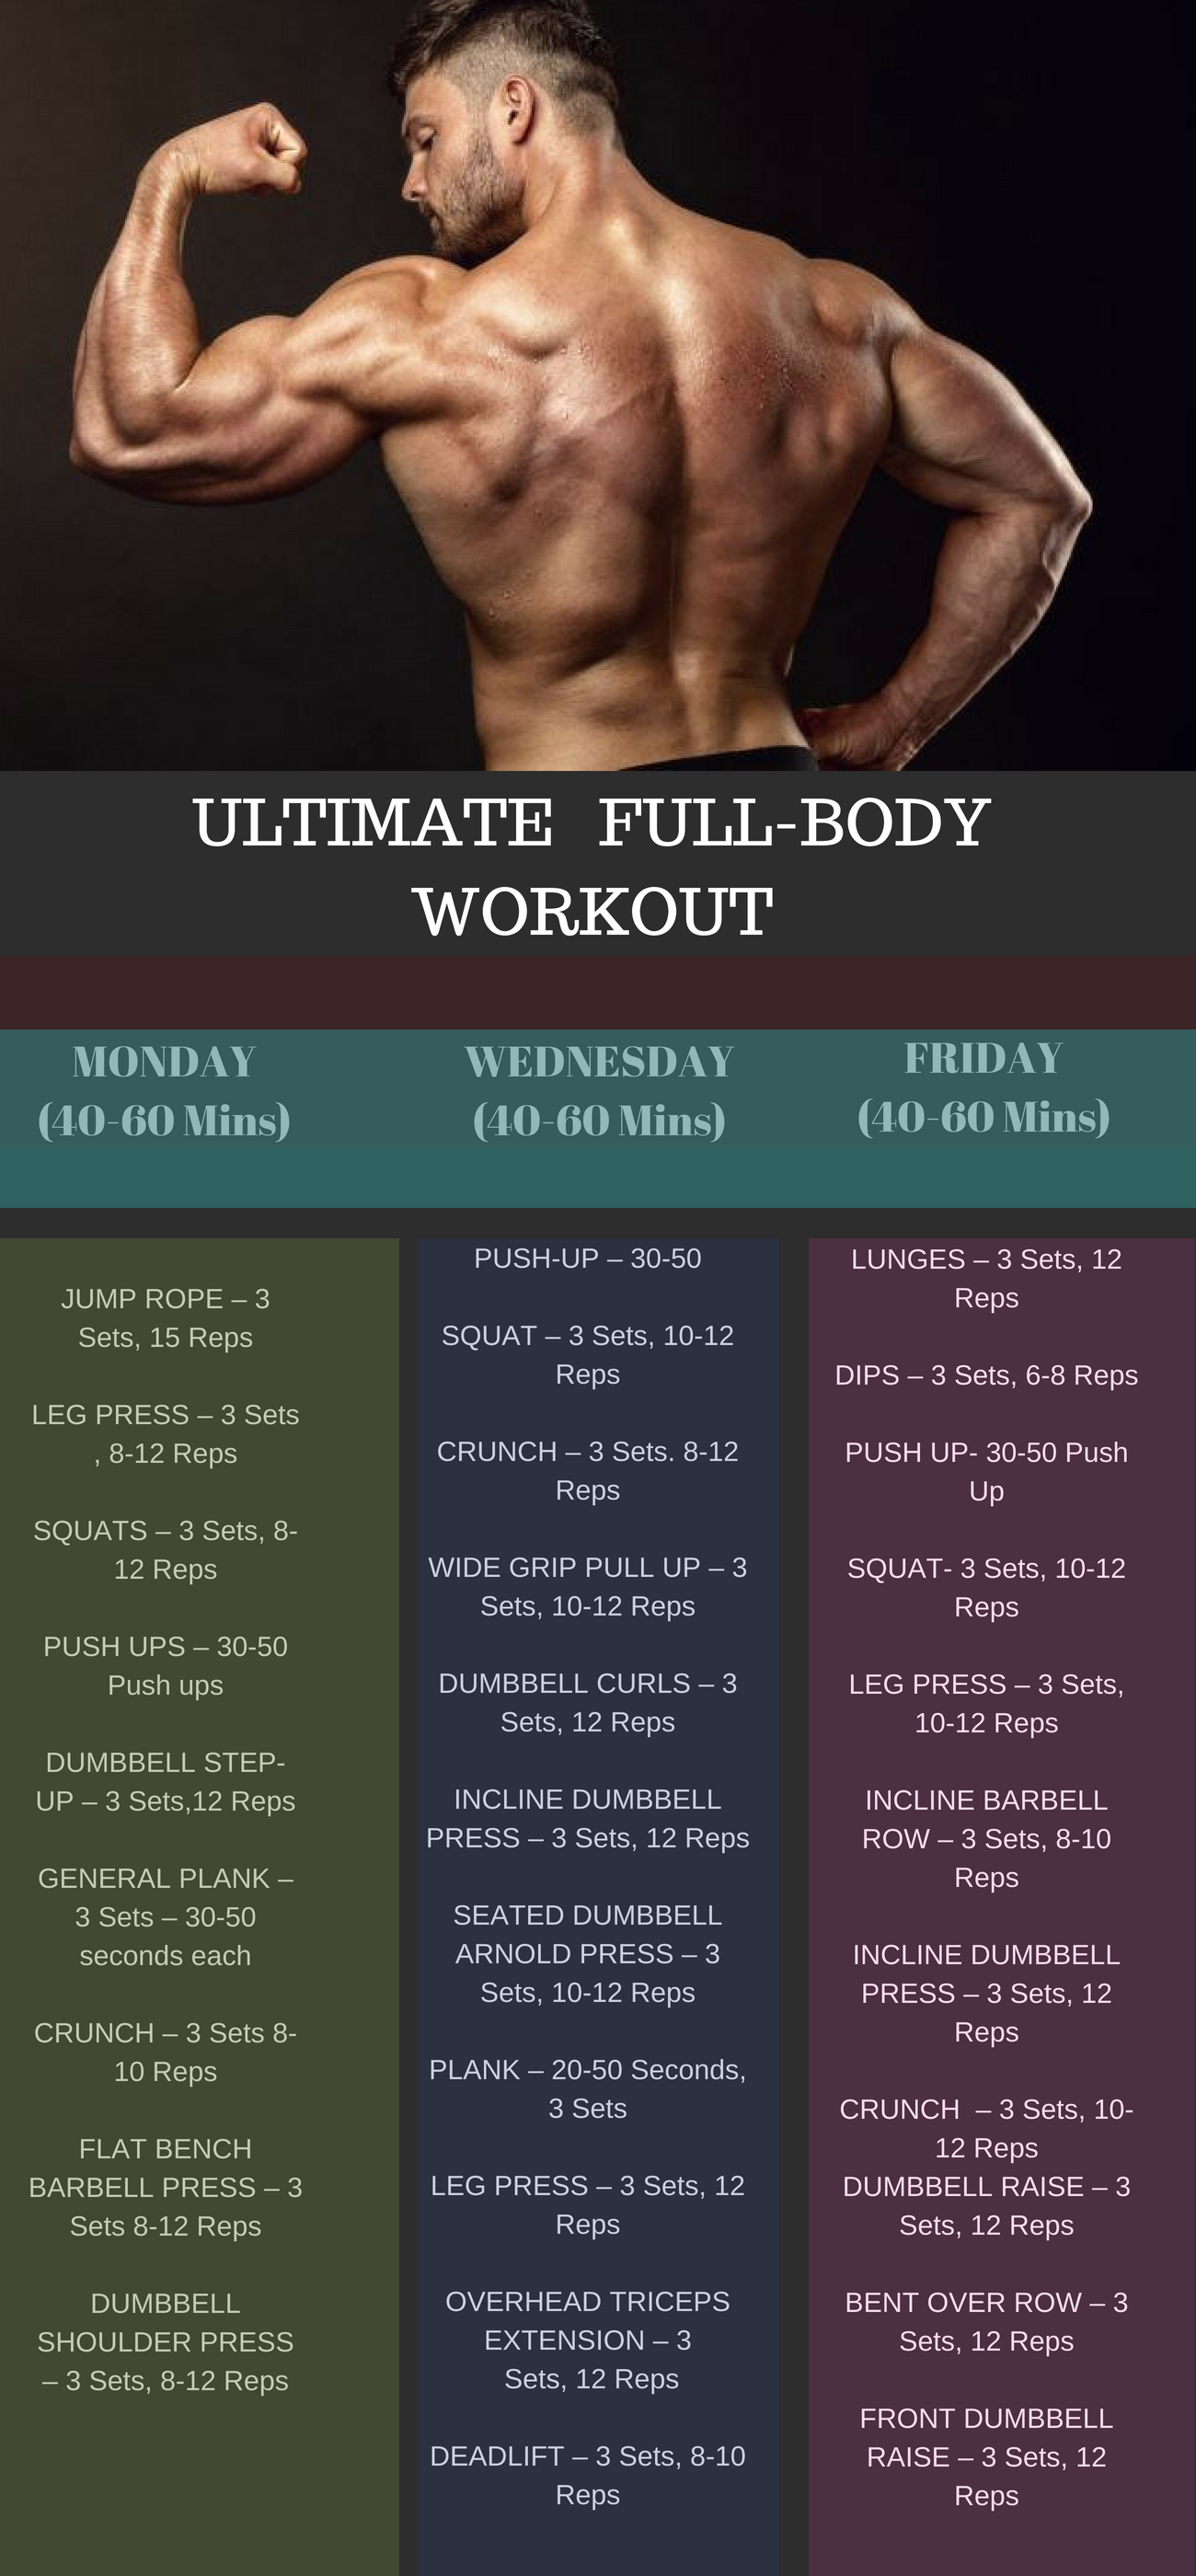 full body workout routines are great for both  beginners